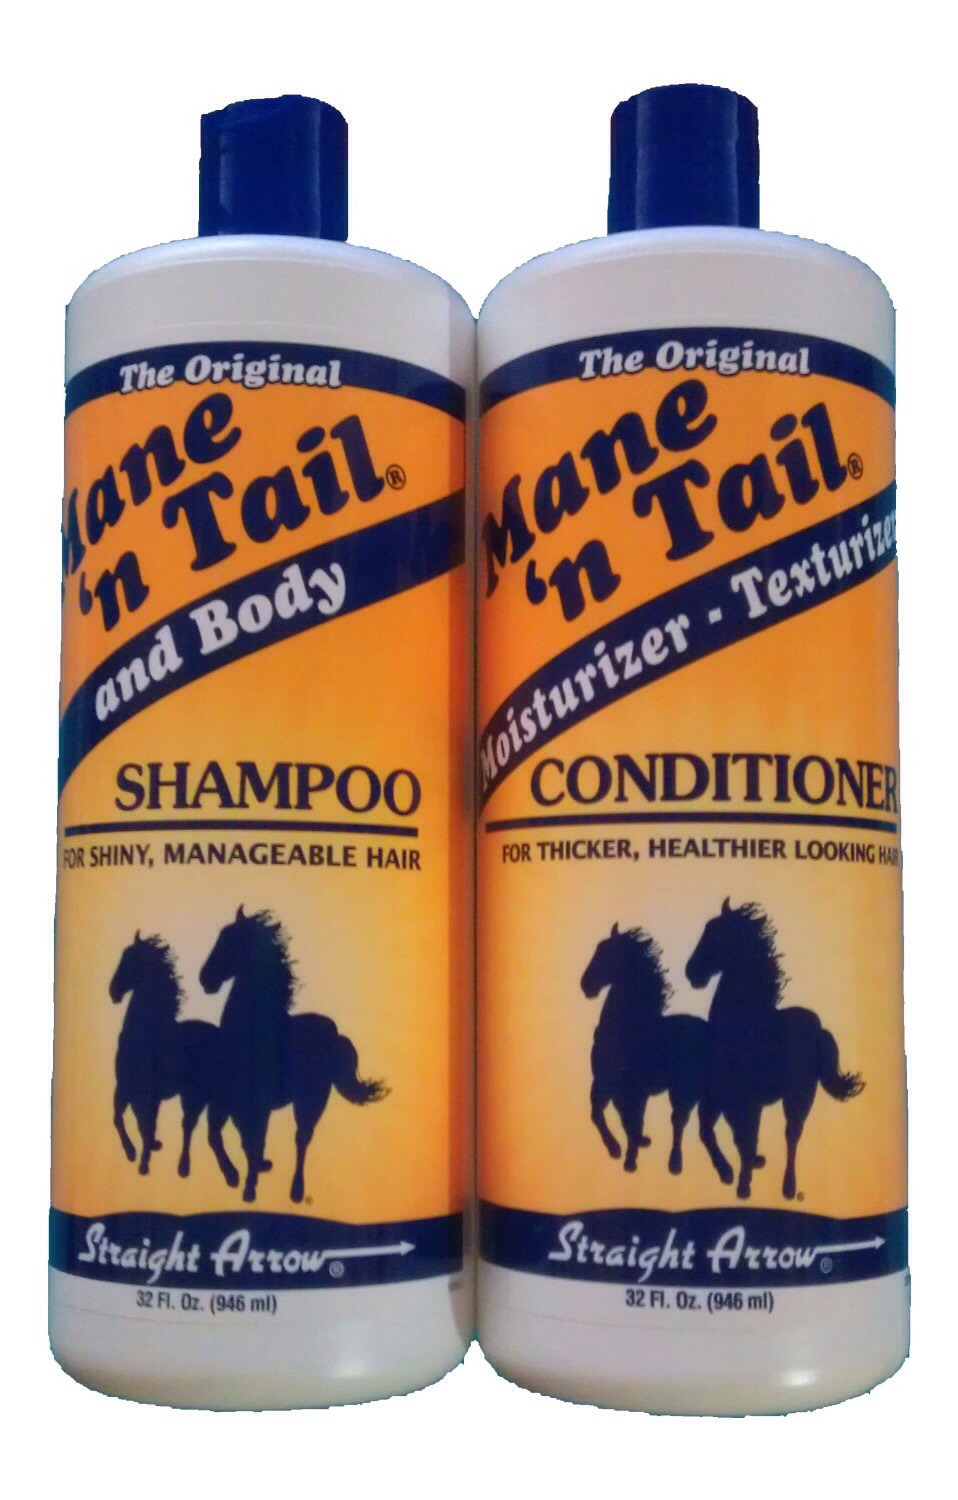 ✨BONUS TIP✨ Mane 'n' tail shampoo and conditioner is well known for it's amazing effect on hair growth, it's originally used for horses, for their manes to grow, but can also be used for humans. This really helps hair growth and can nourish and thicken your hair for healthy hair.